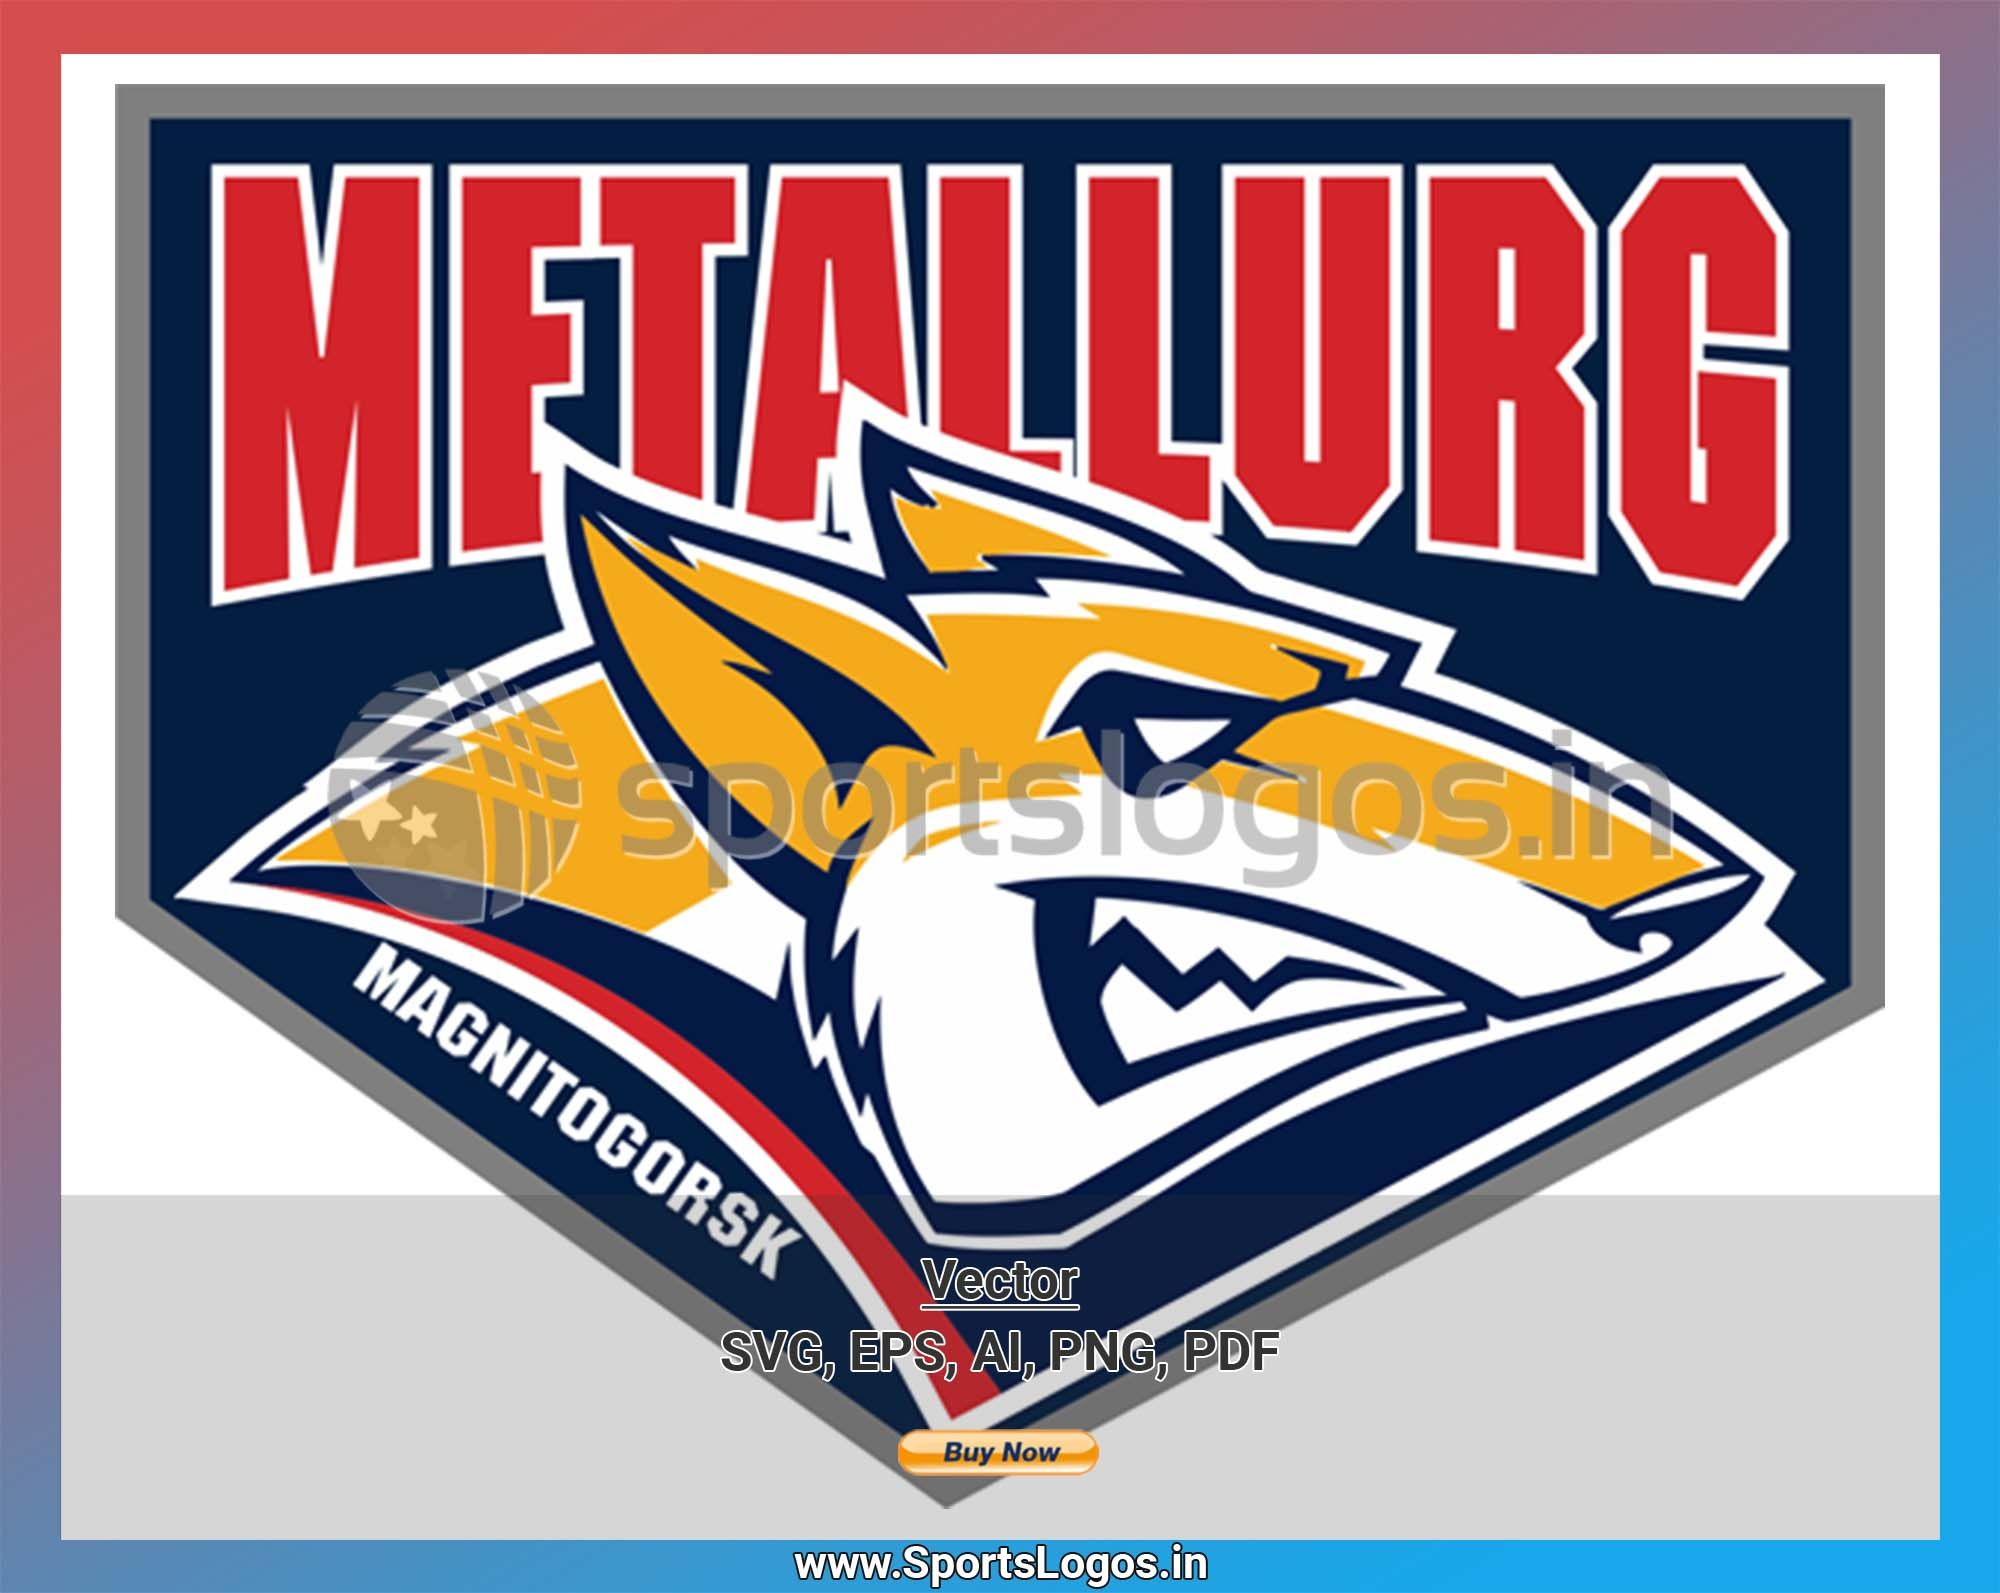 Metallurg Magnitogorsk Hockey Sports Vector Svg Logo In 5 Formats Spln002600 Sports Logos Embroidery Vector For Nfl Nba Nhl Mlb Milb And More In 2020 Kontinental Hockey League Sport Hockey Vector Svg